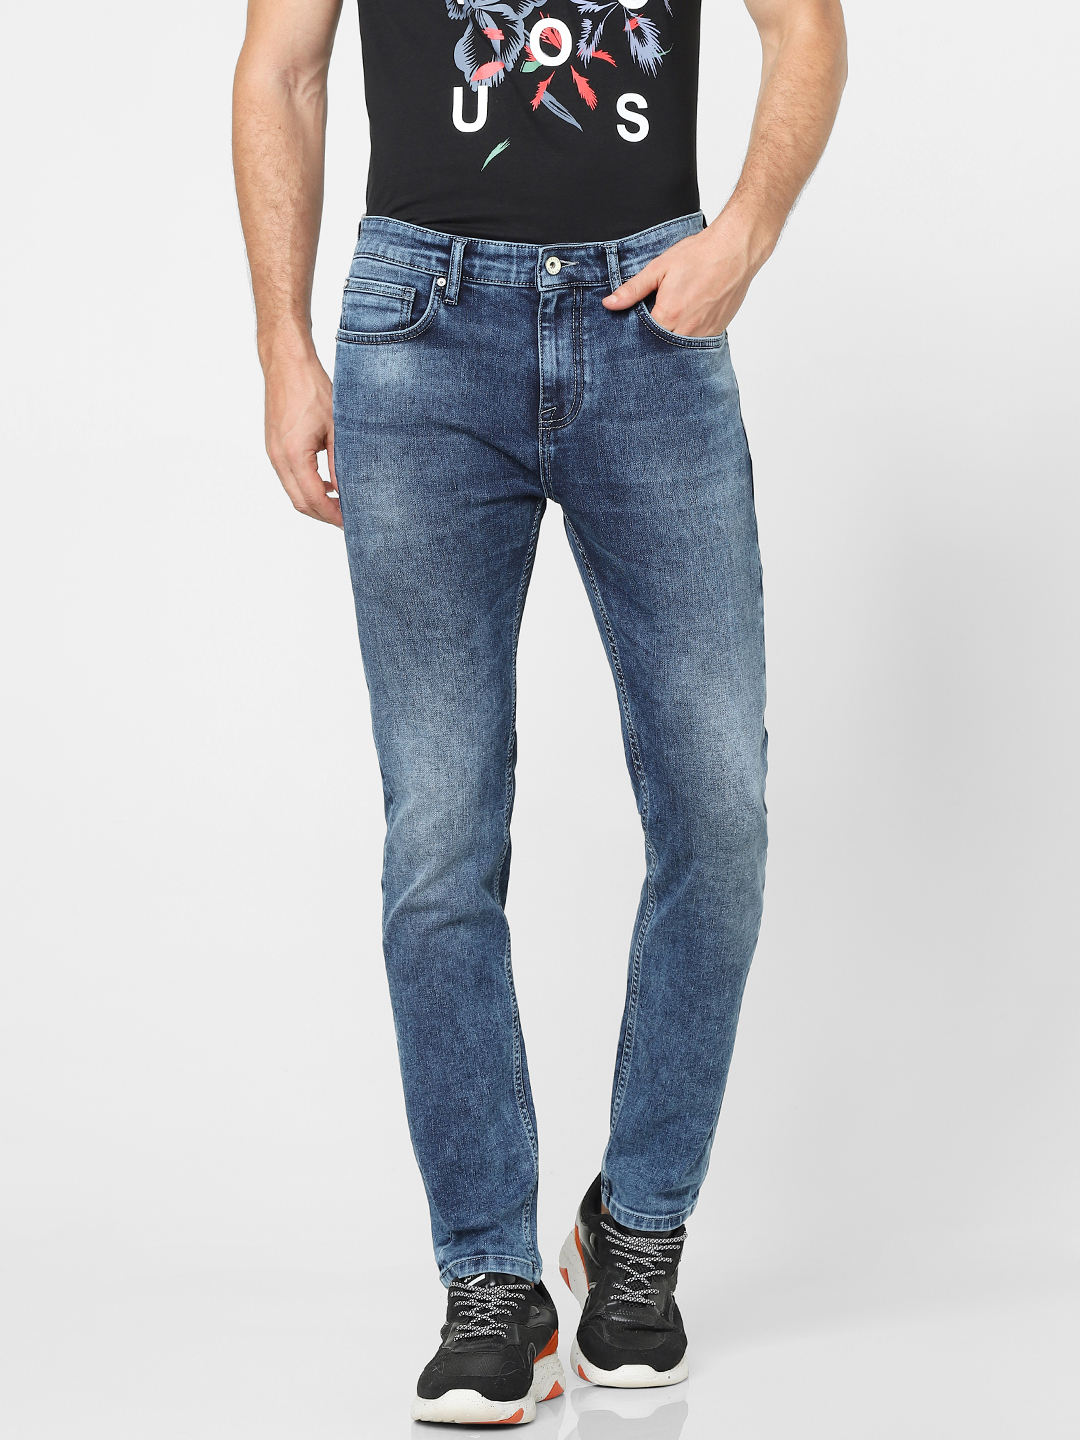 celio | Tapered Fit Blue Jeans